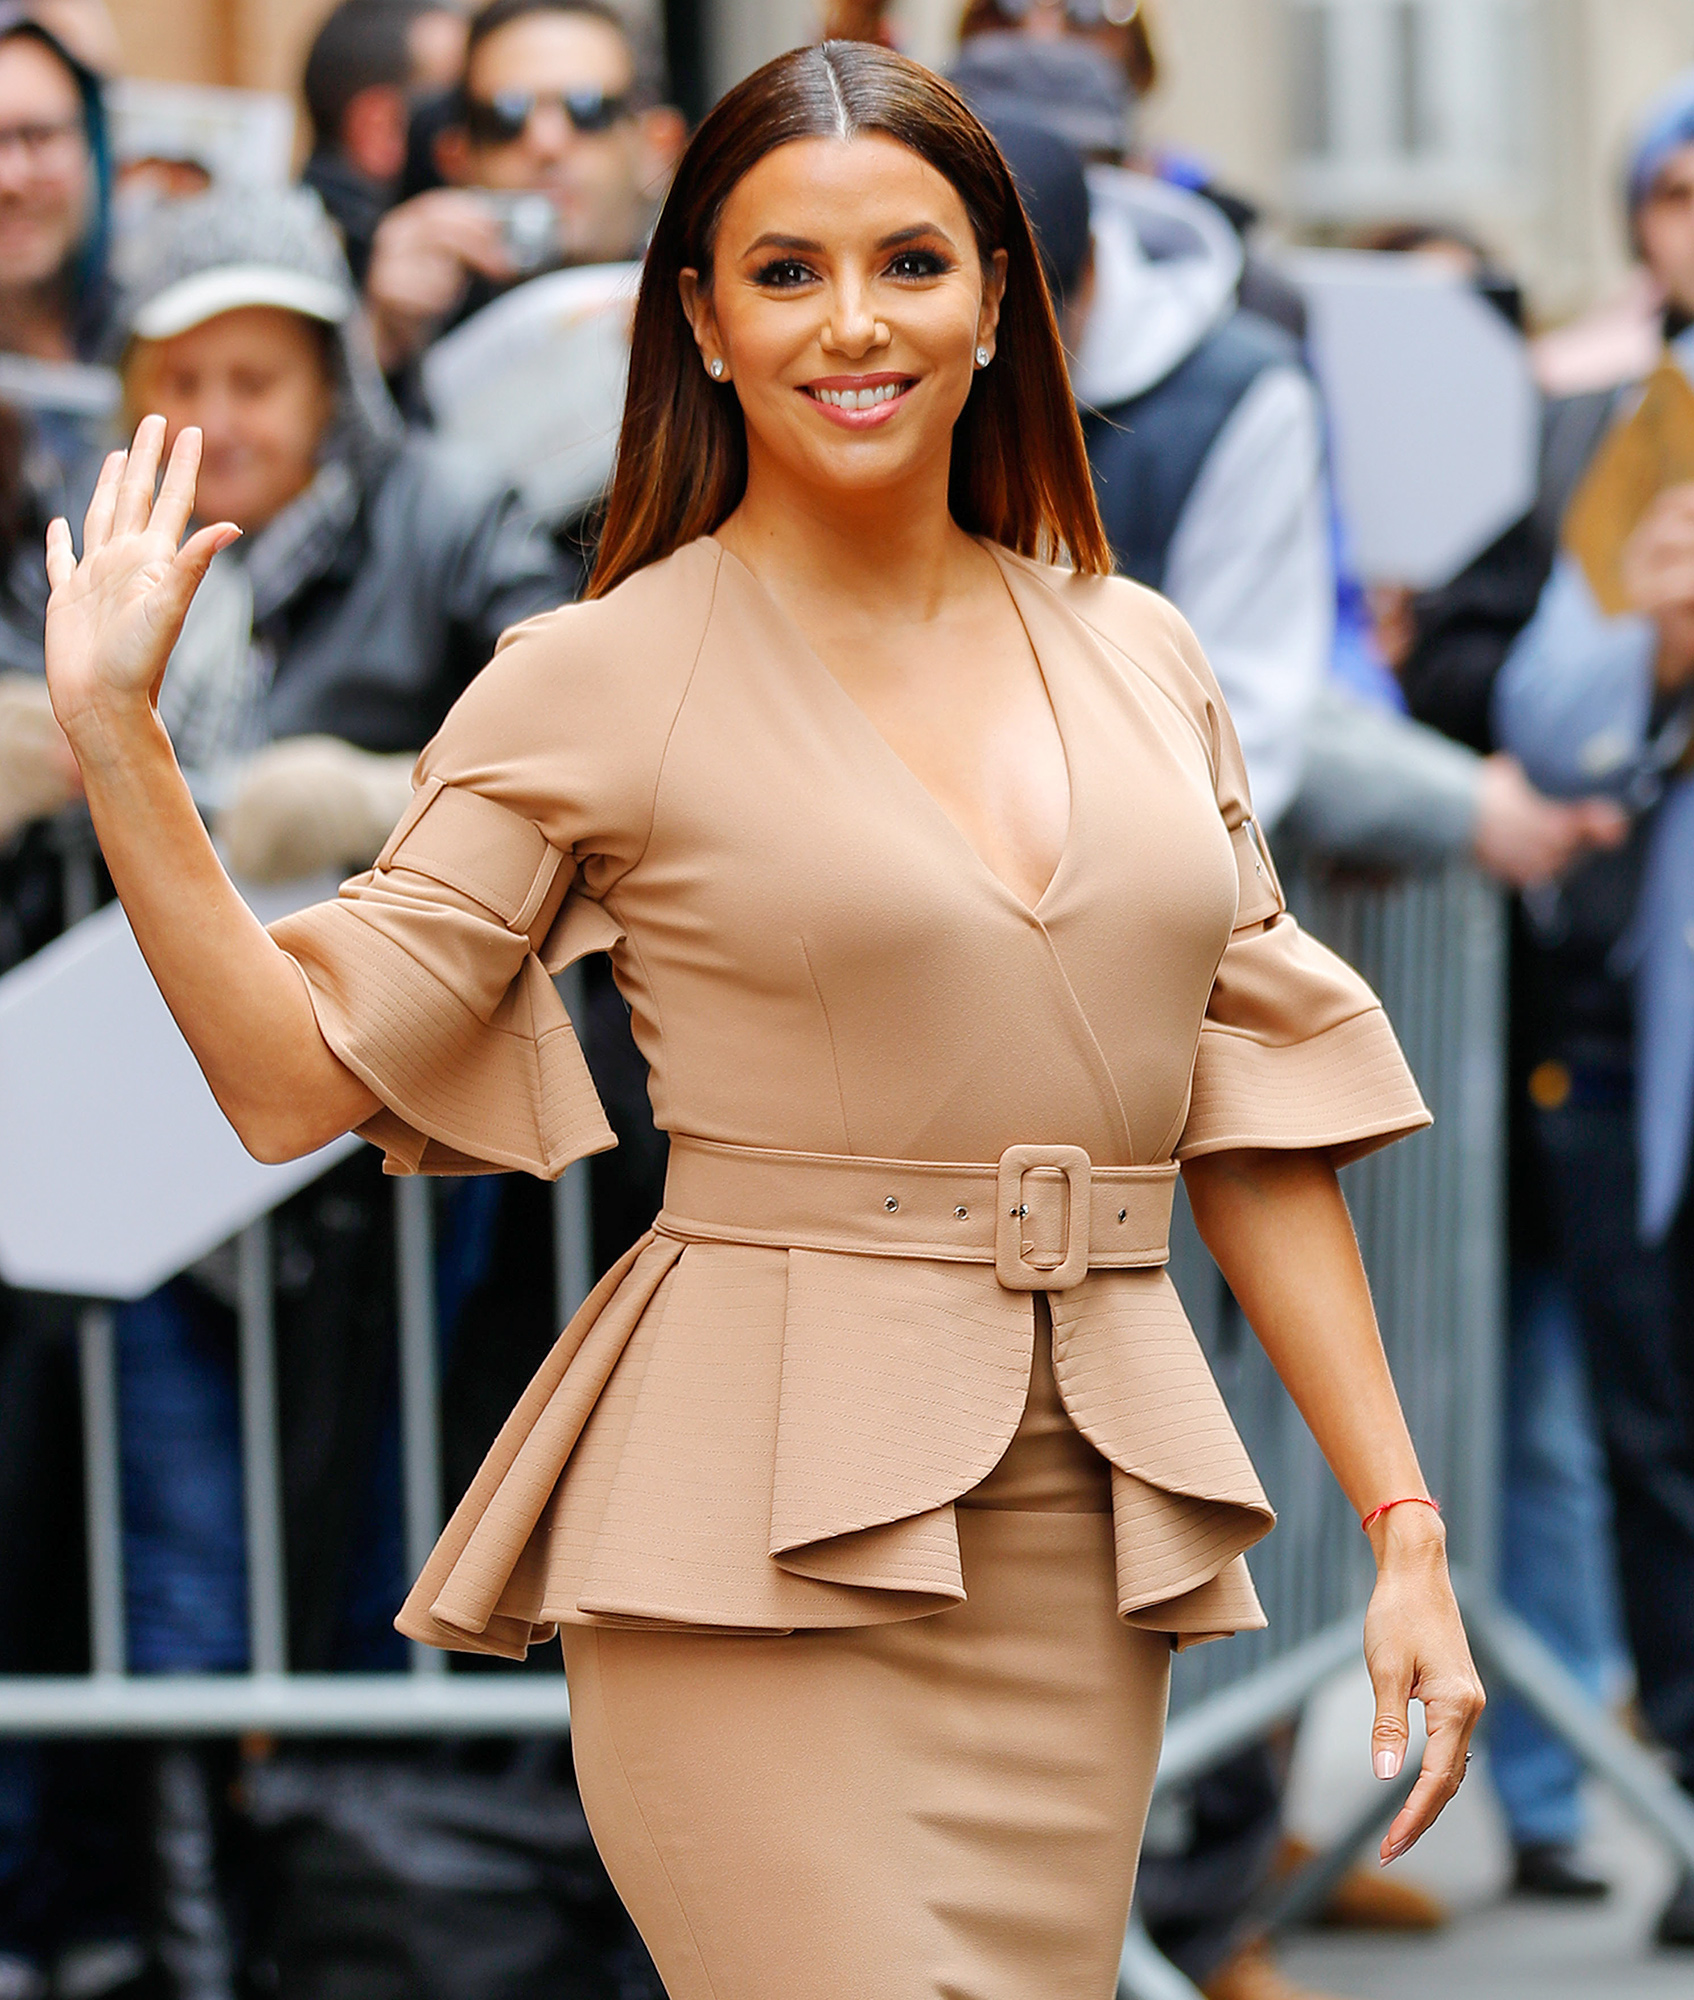 Eva Longoria shows off her curvaceous figure when departing The View studios in New York